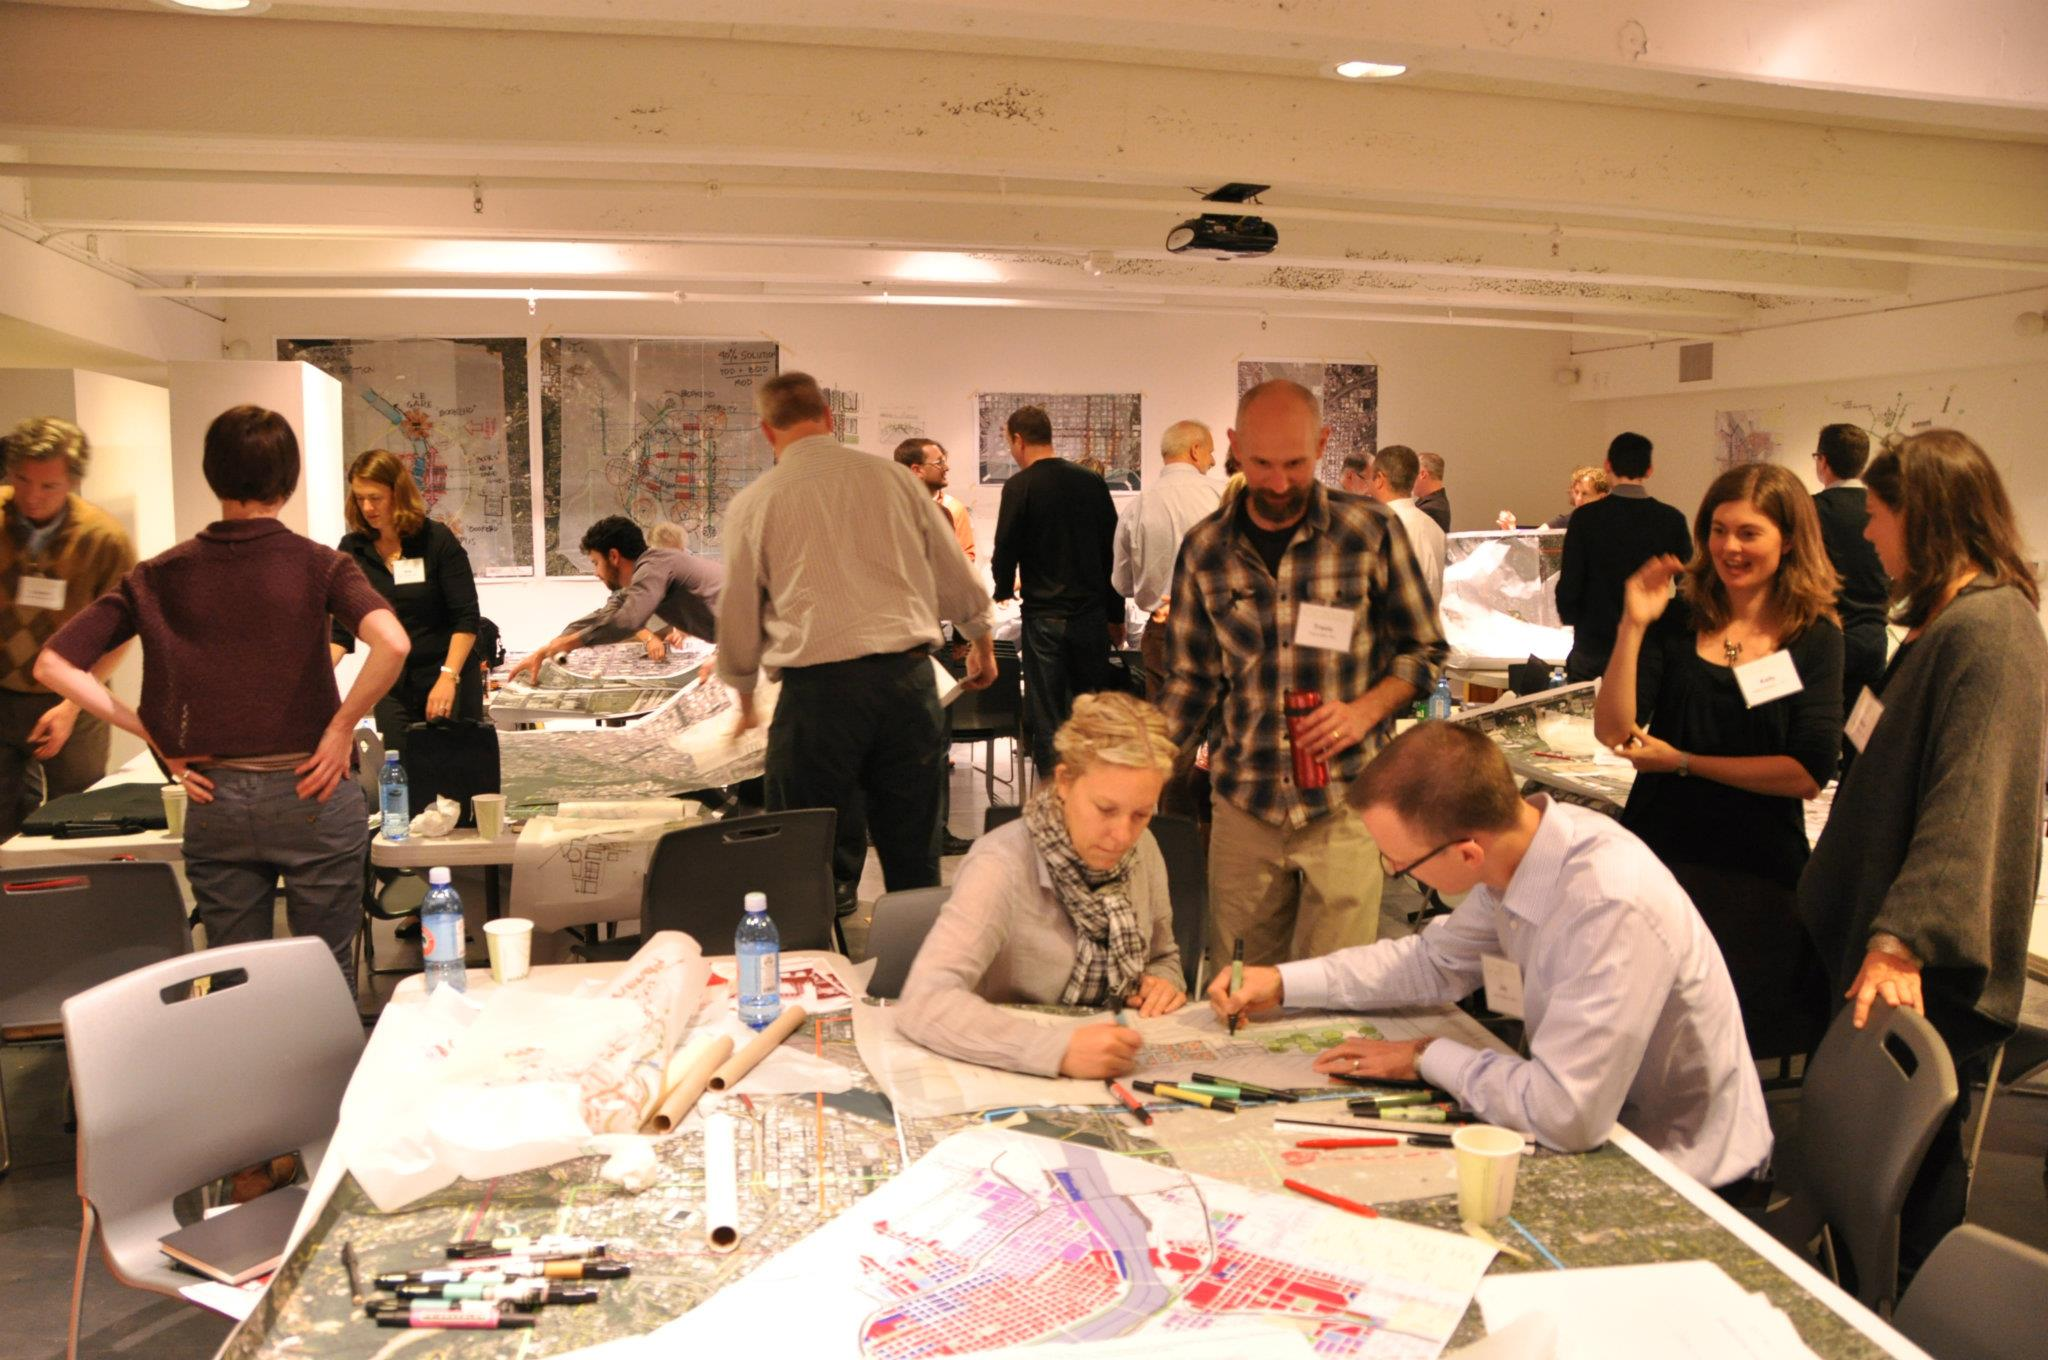 Central city 2035 urban design charrette - Charrette dessin ...